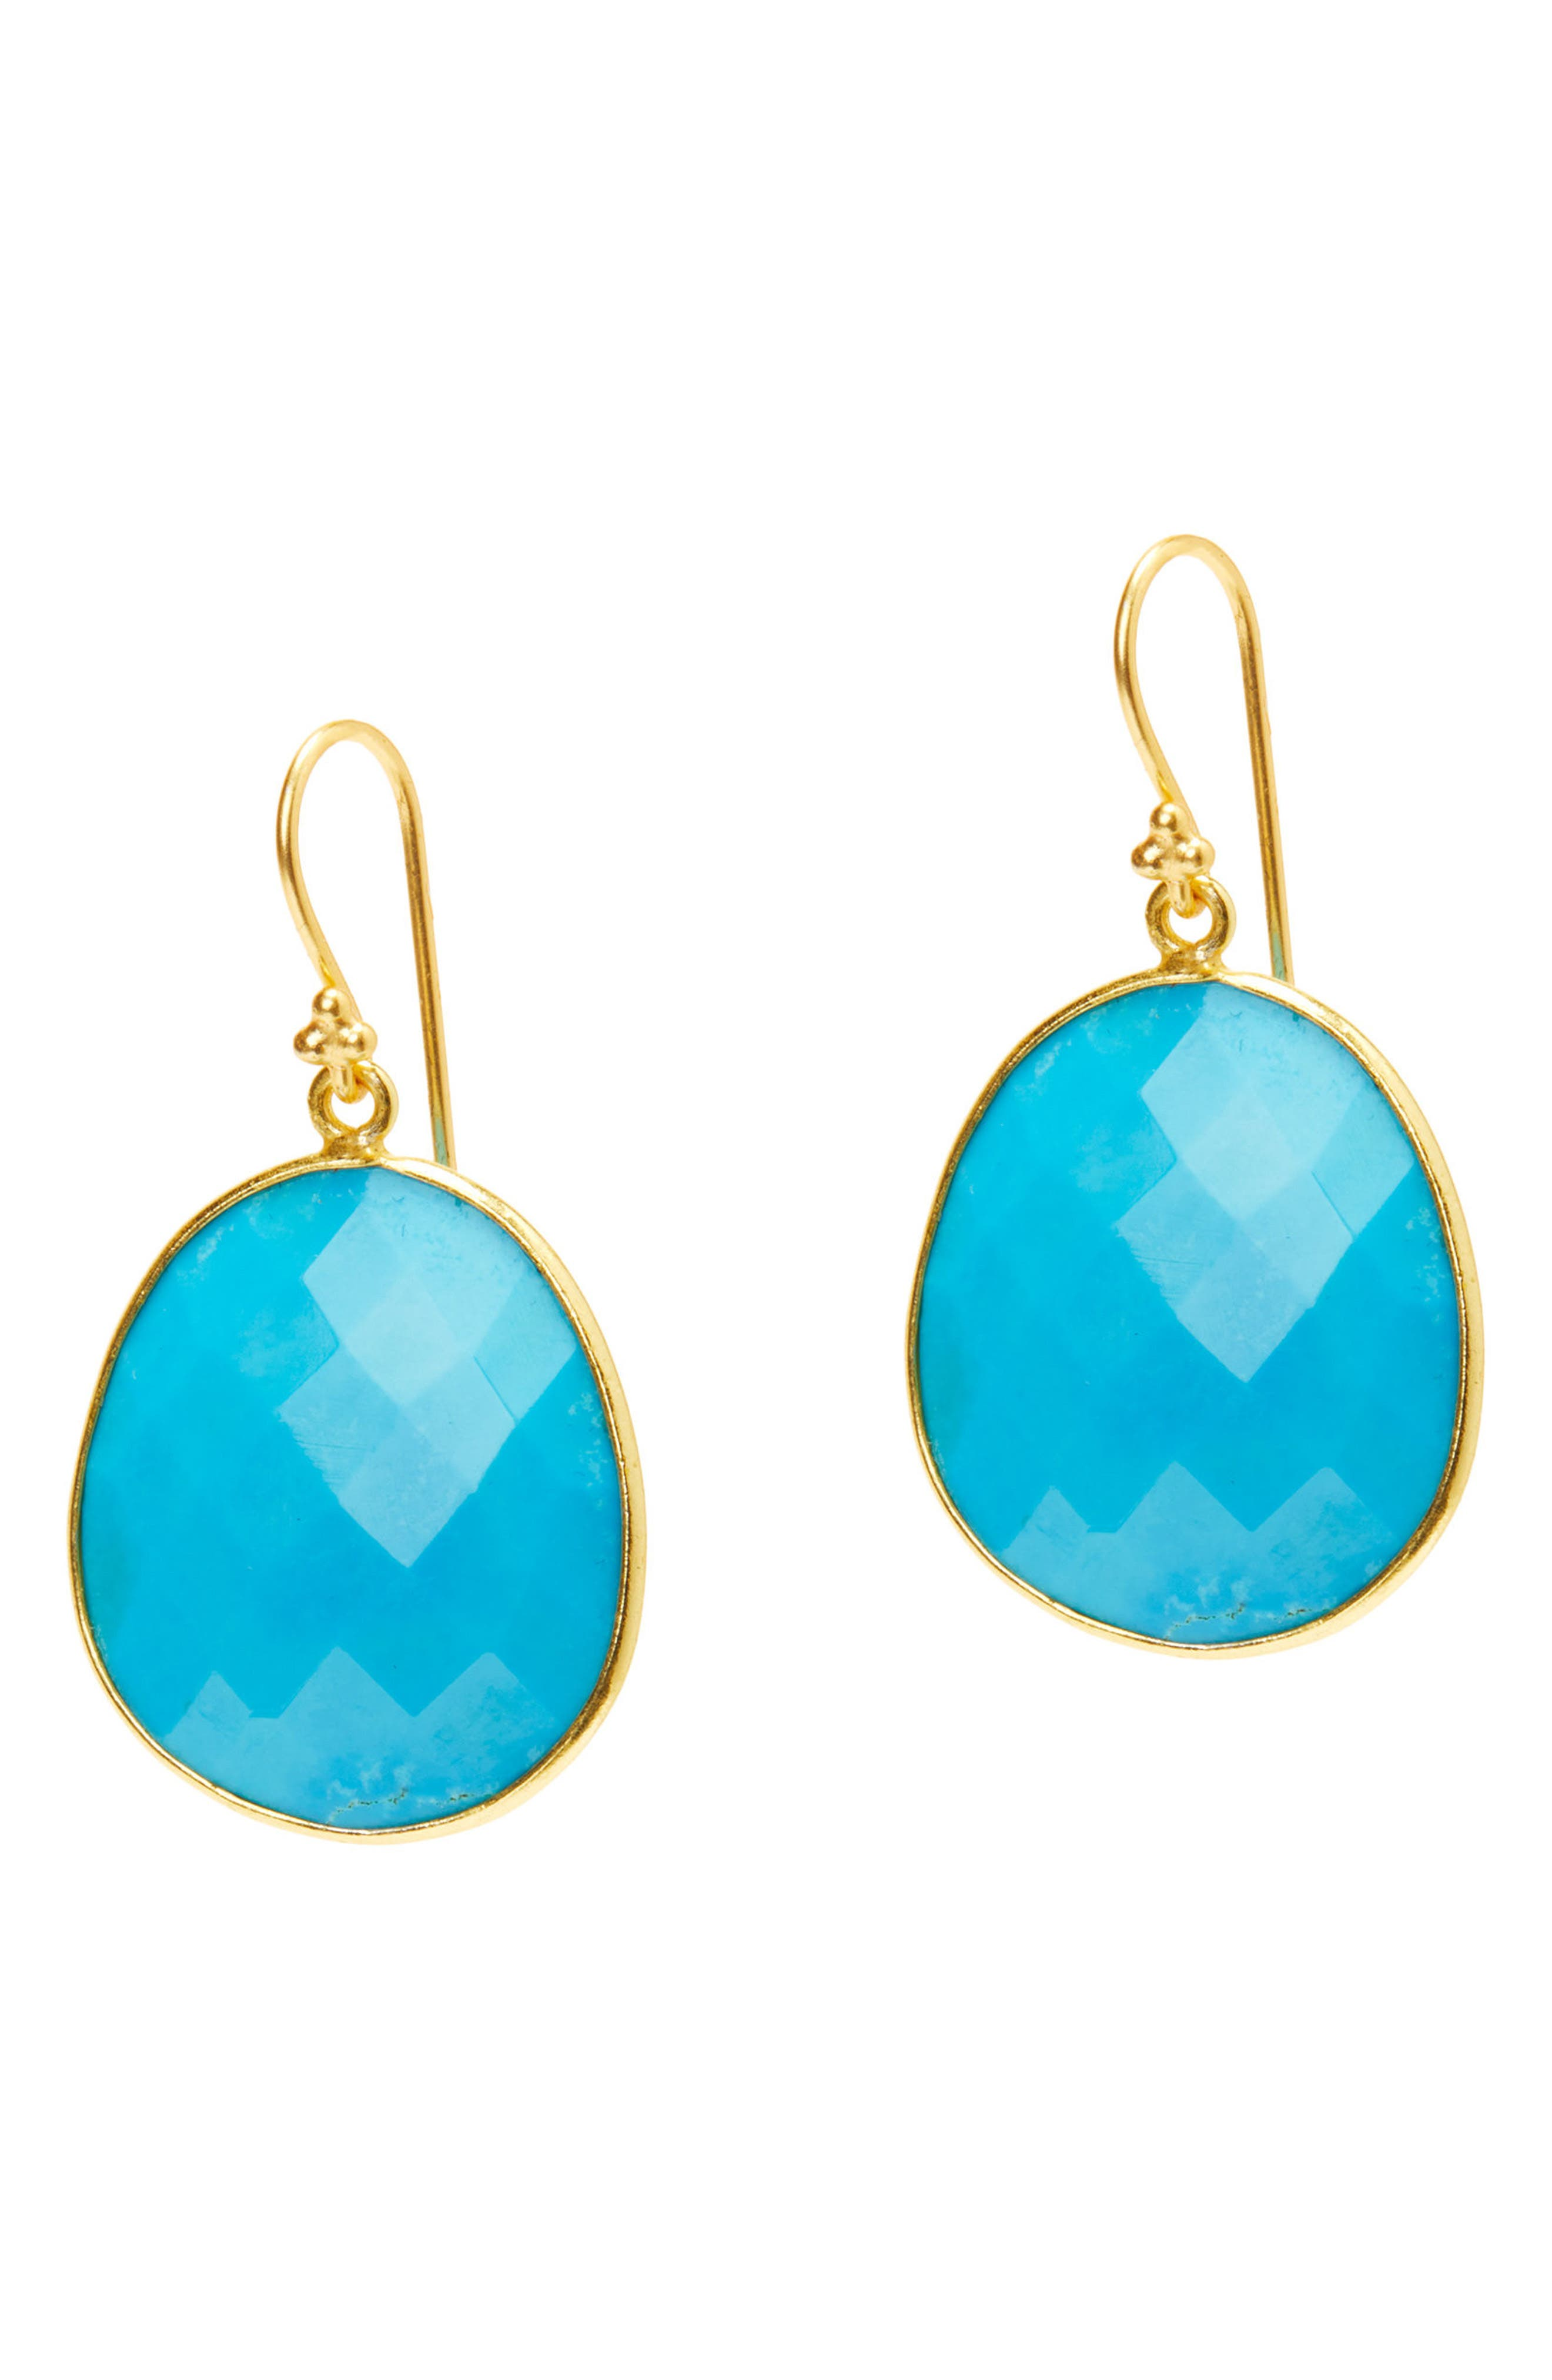 Mustique Semiprecious Stone Drop Earrings,                         Main,                         color, Turquoise